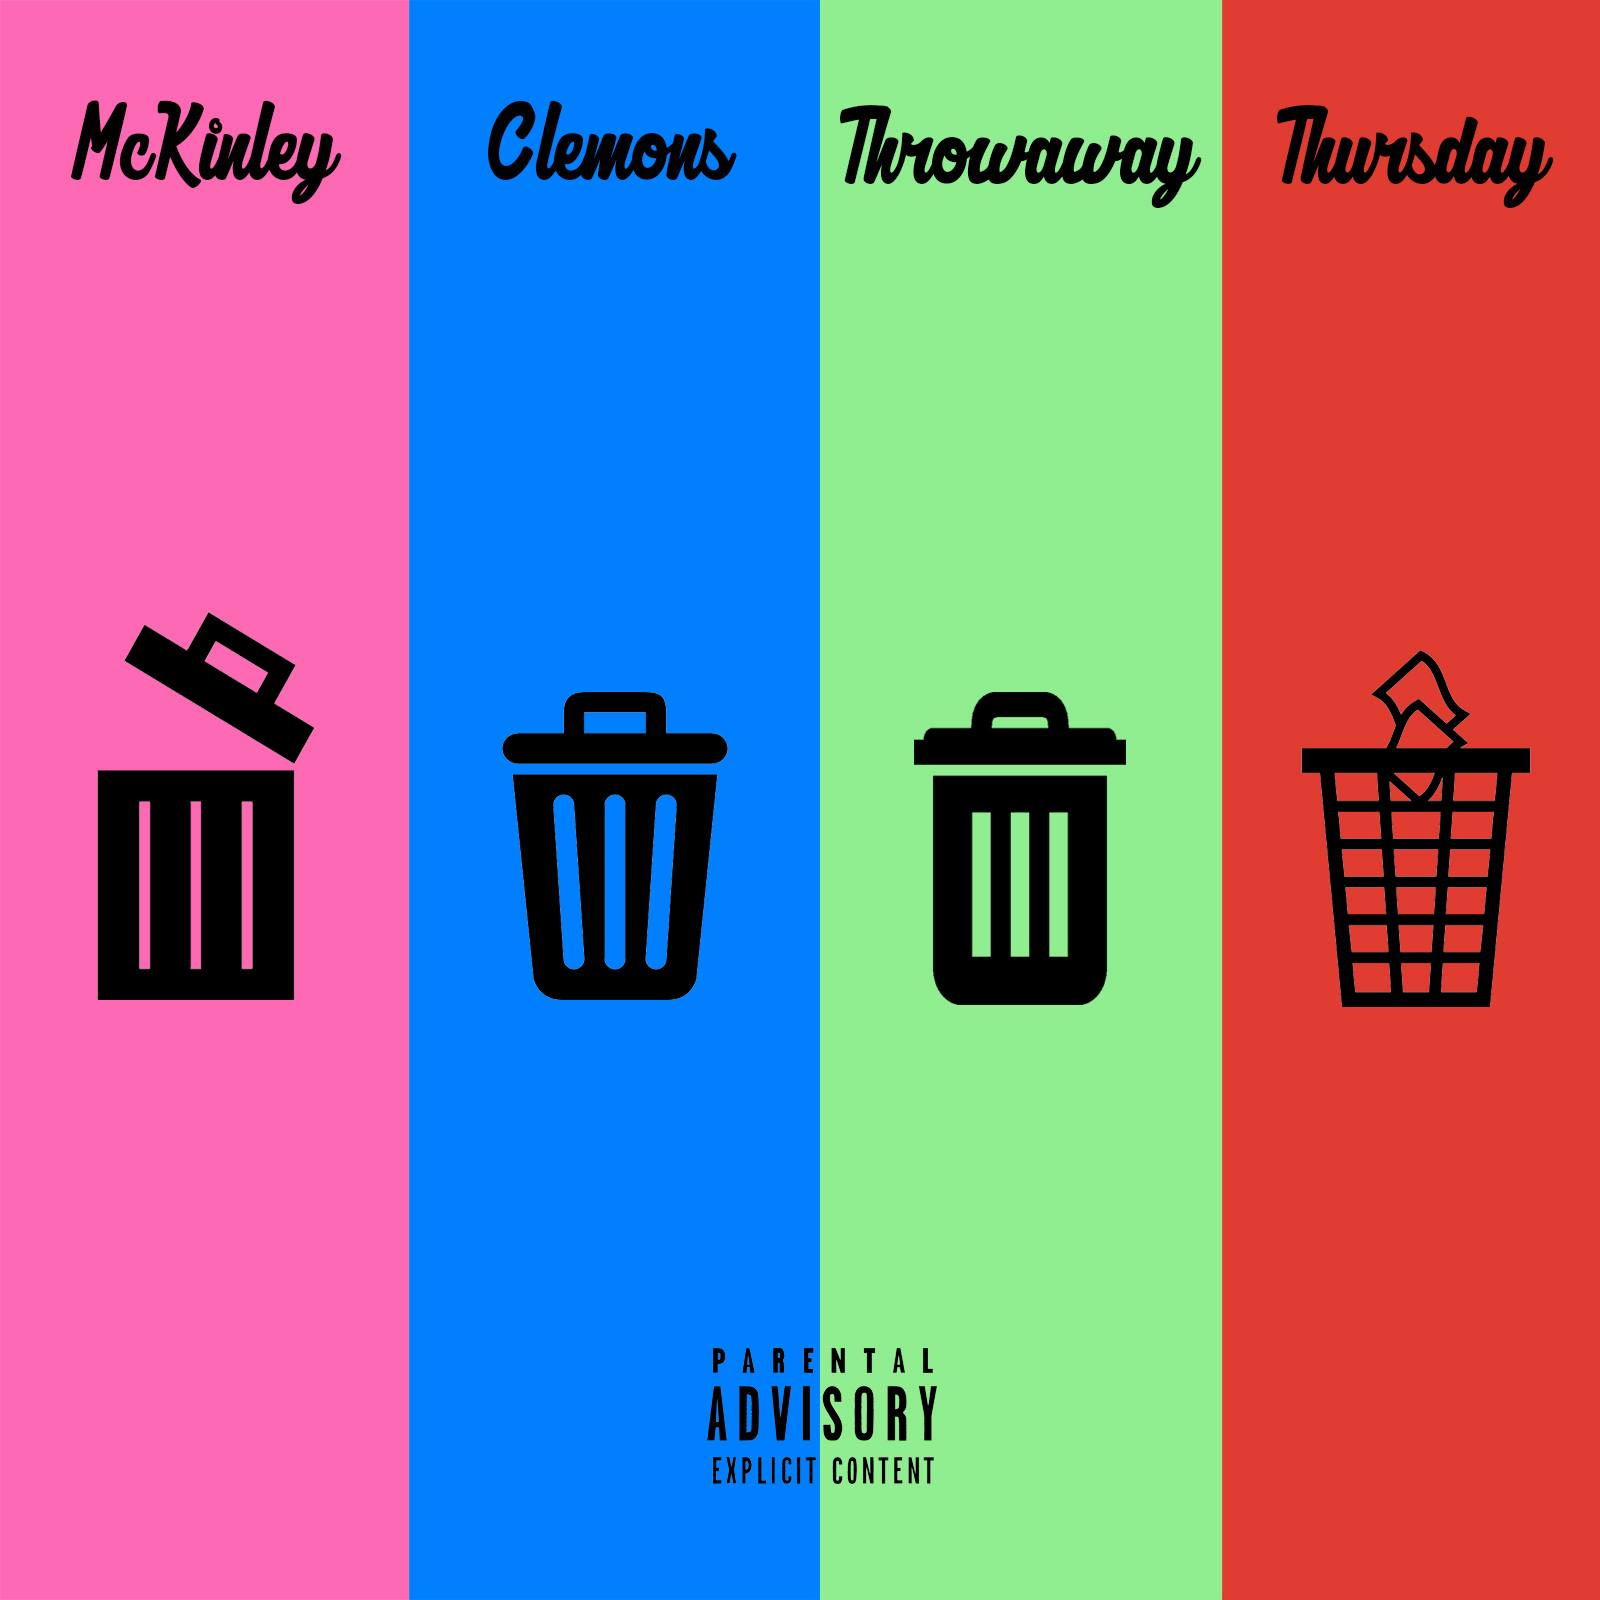 Throwaway Thursday - Throwaway Thursday was a creative release designed and produced by MIKE Beats. Originally put out as a Soundcloud exclusive, this project by Willie Mac was a short and sweet EP. With only 4 tracks, Willie Mac and MIKE decided to release one track every Thursday for a month. The sound of the project consisted of a lot of soul and smooth lo-fi samples. Together Willie and MIKE once again delivered for their fans.